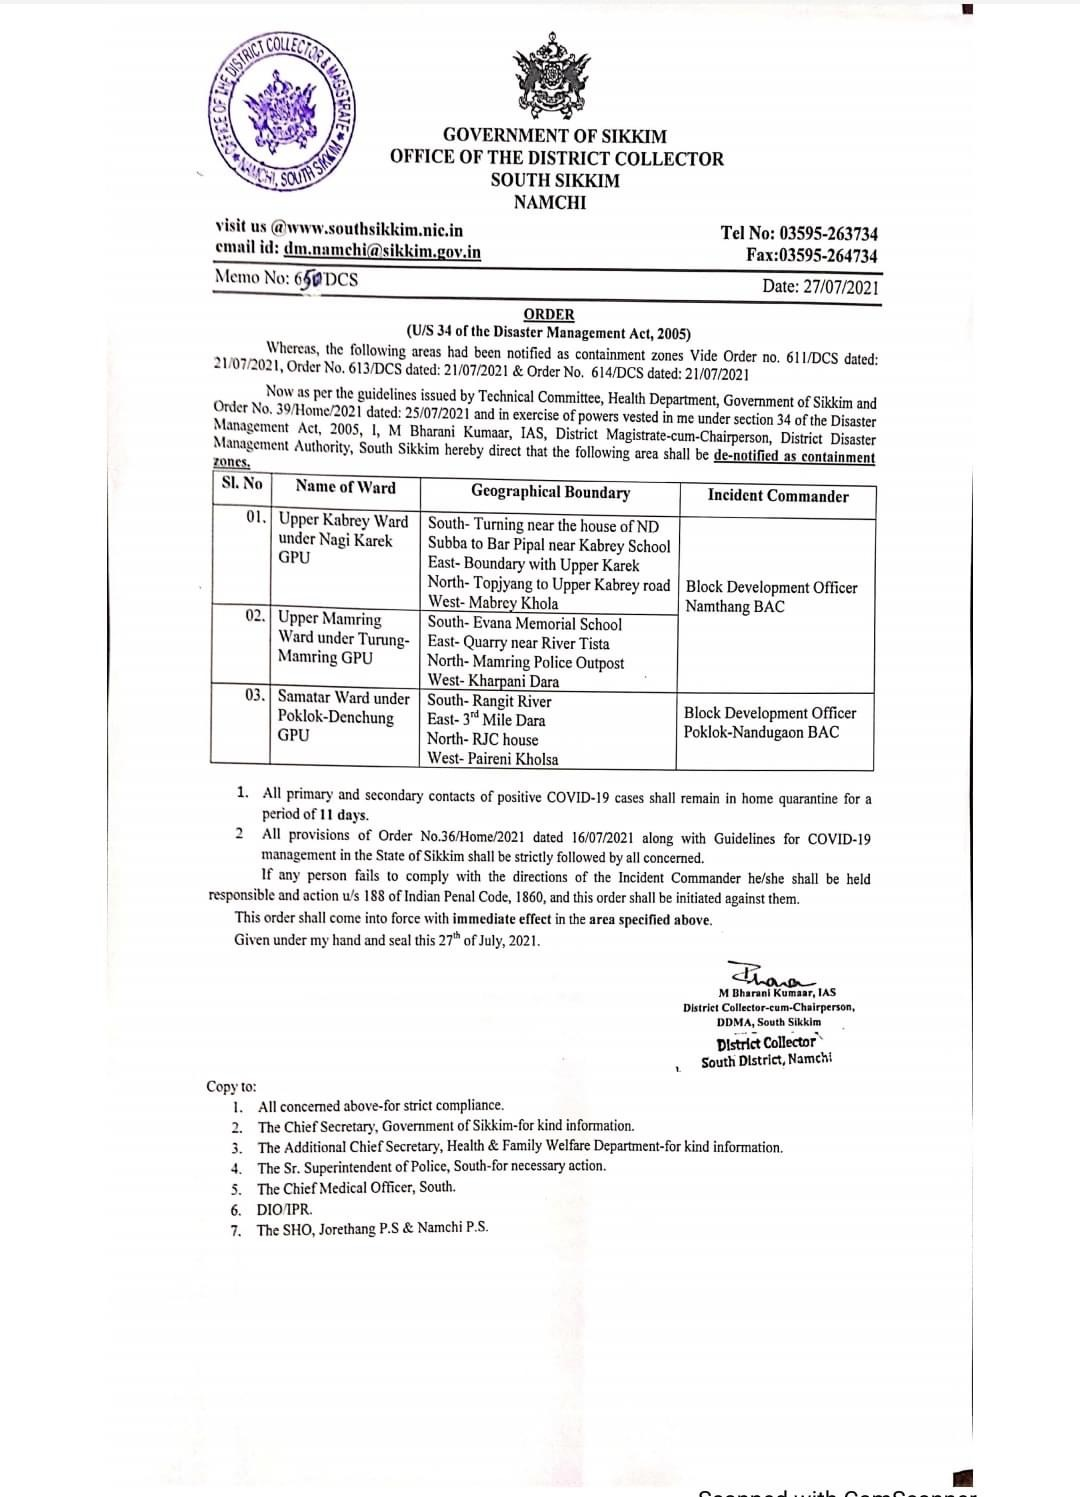 Following premises have been de-notified as containment zone under South District